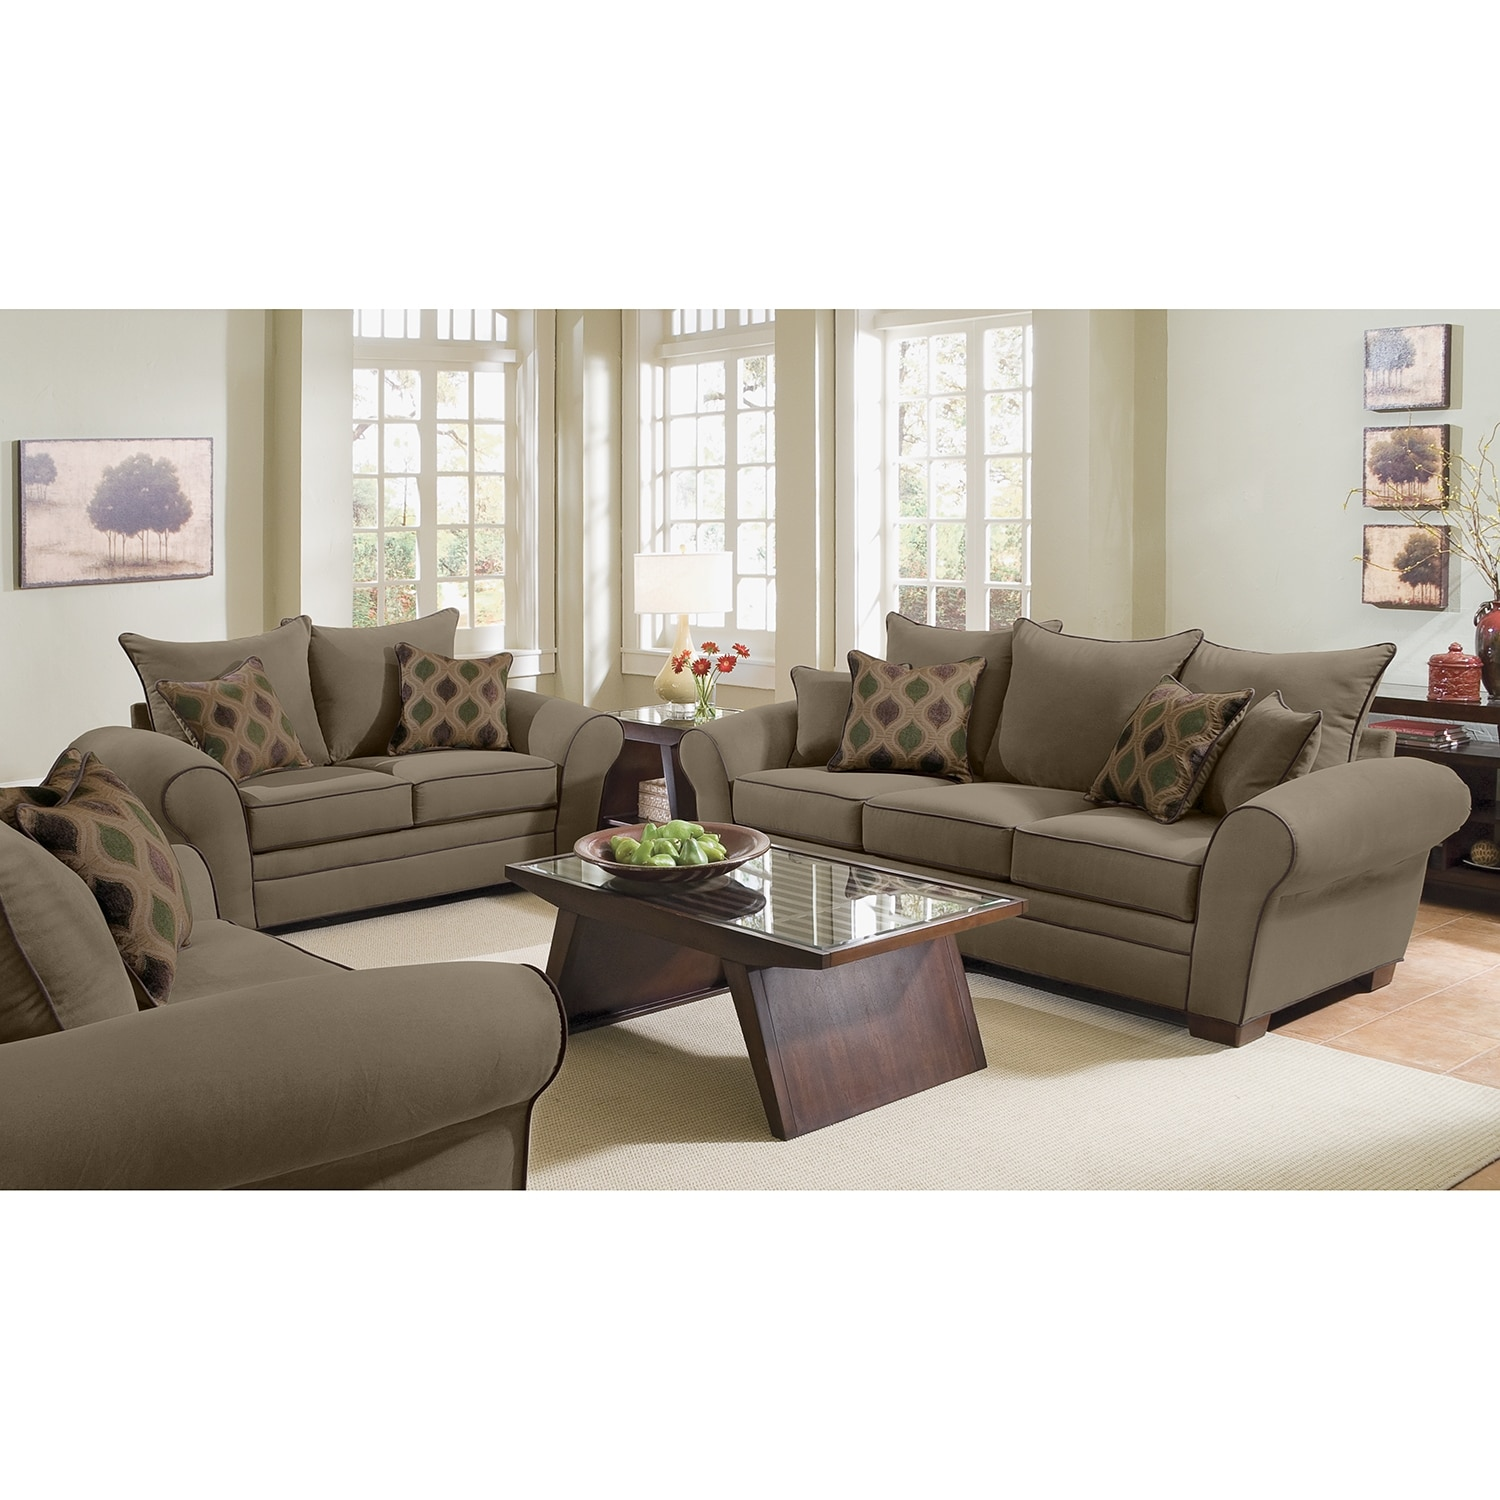 Livingroomfurniture: Rendezvous Sofa And Loveseat Set - Olive